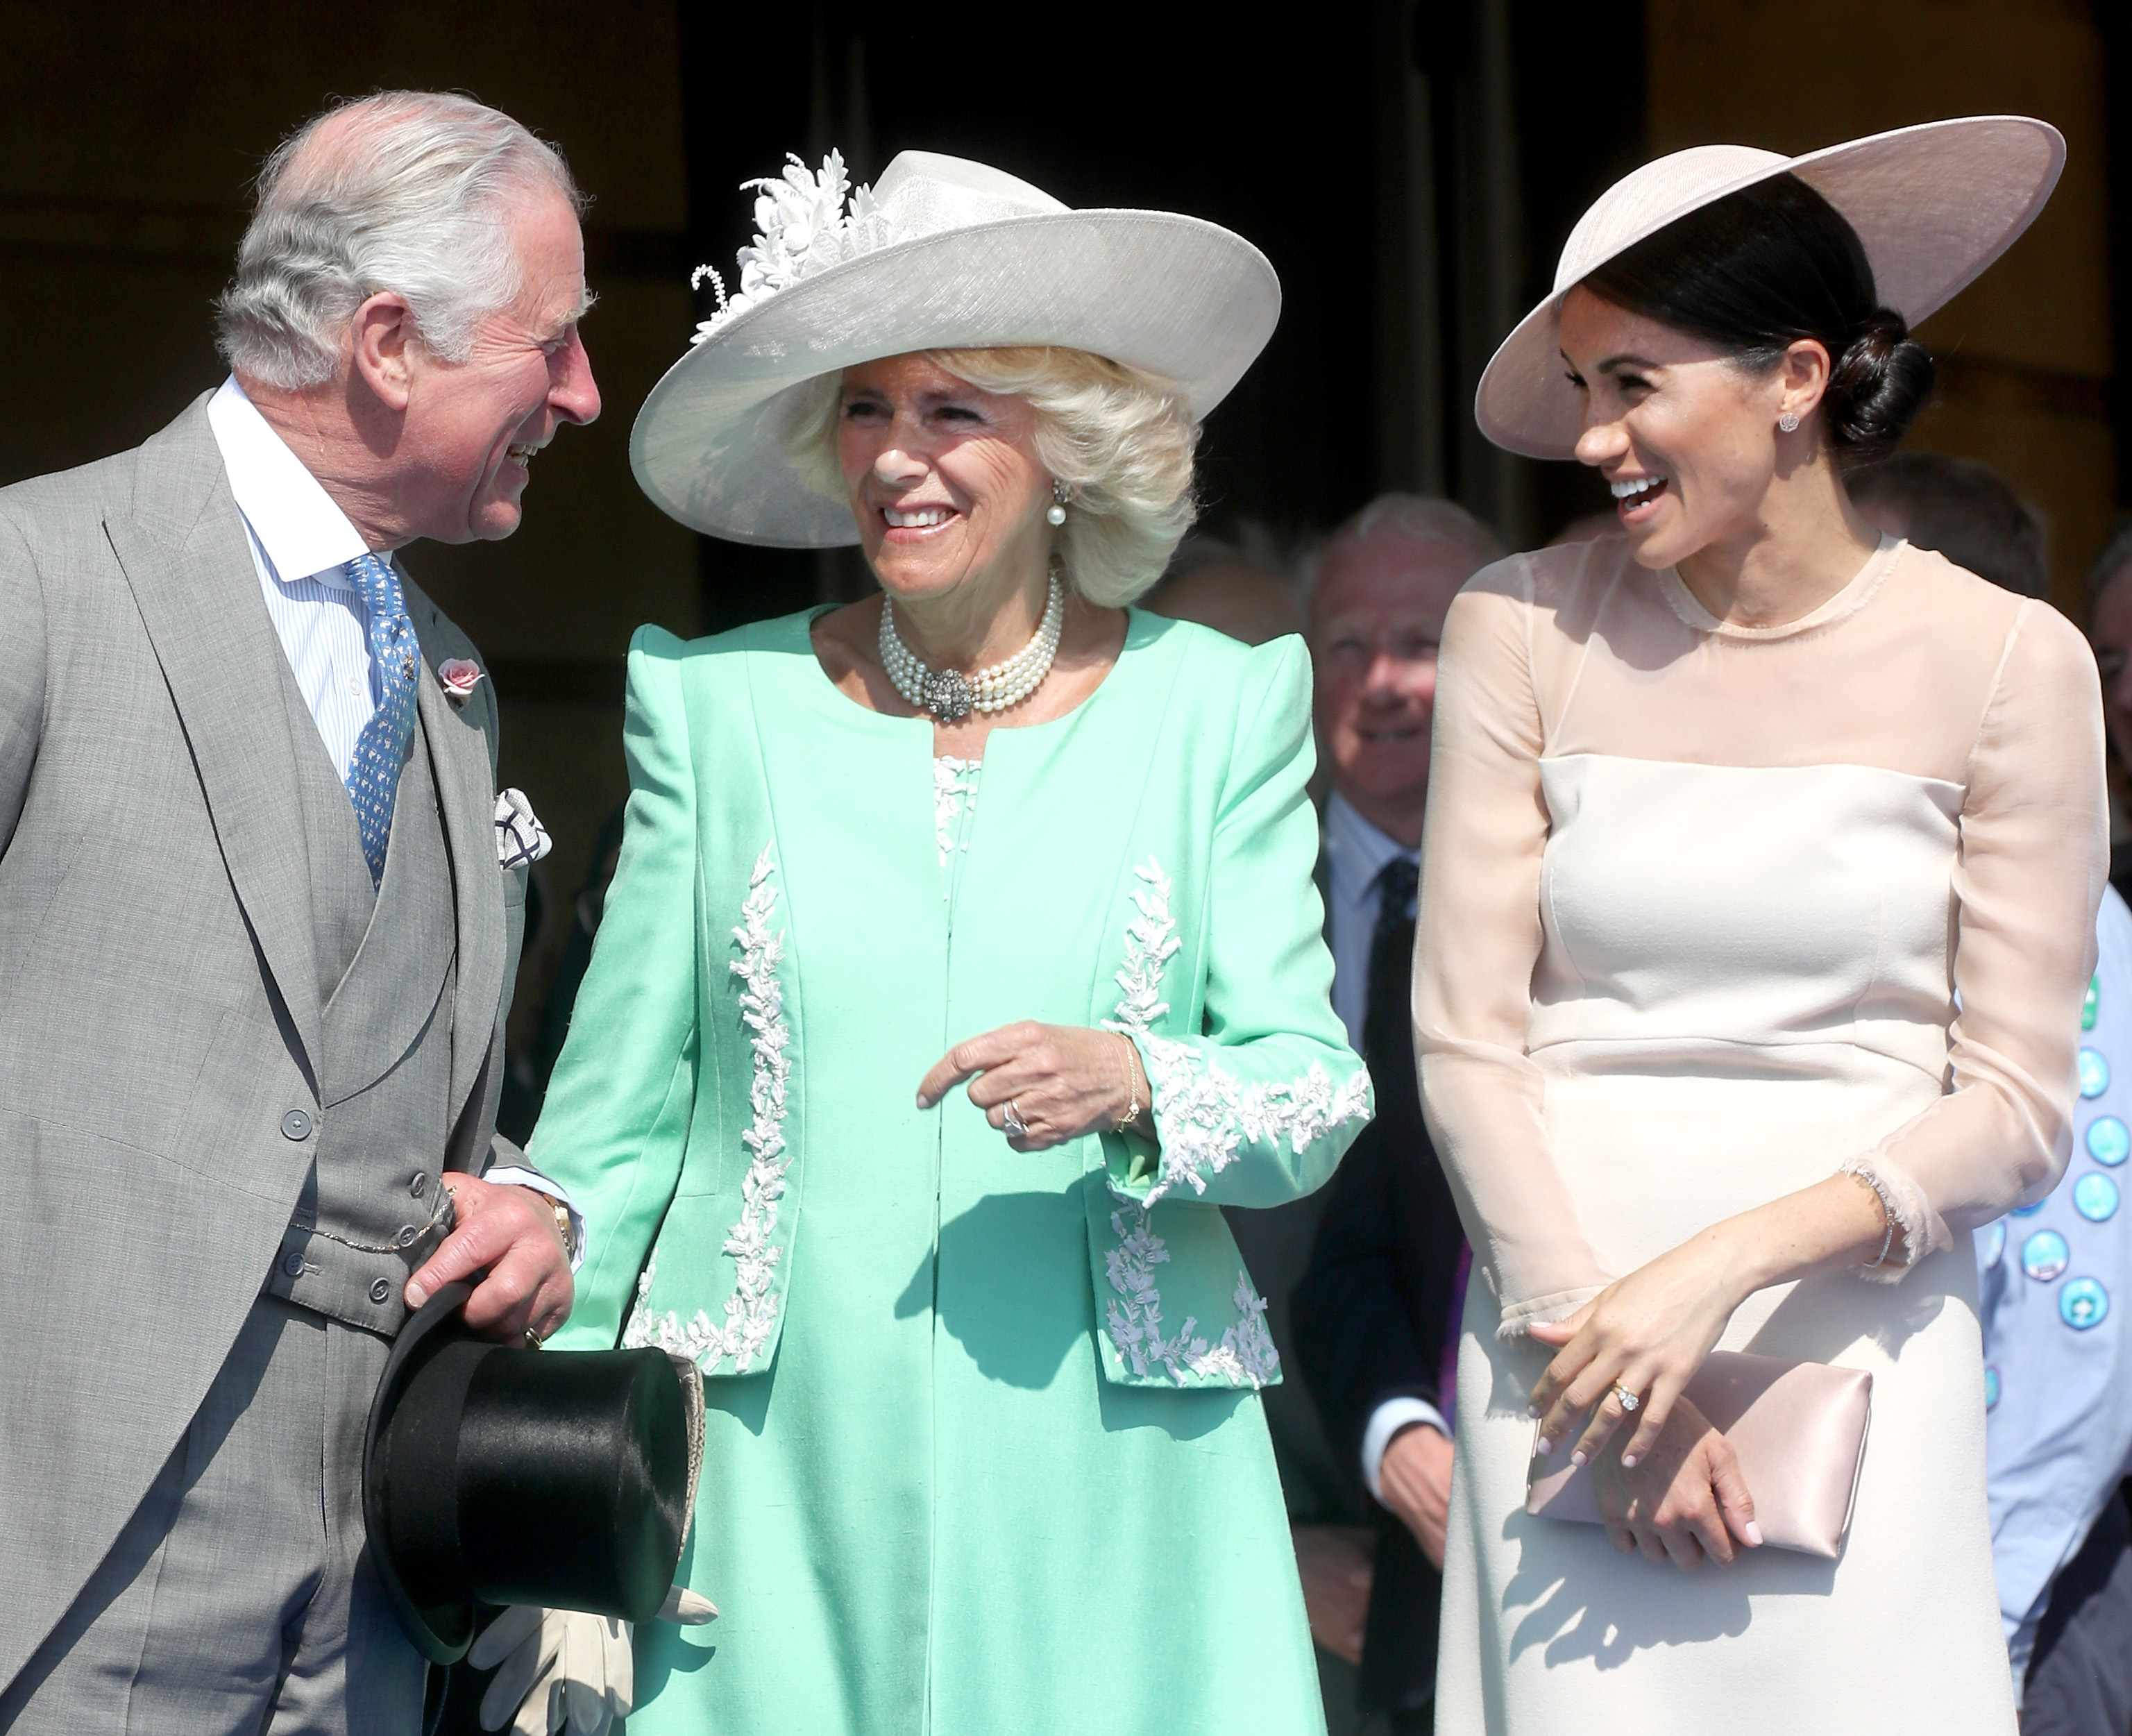 The Prince Of Wales' 70th Birthday Patronage Celebration